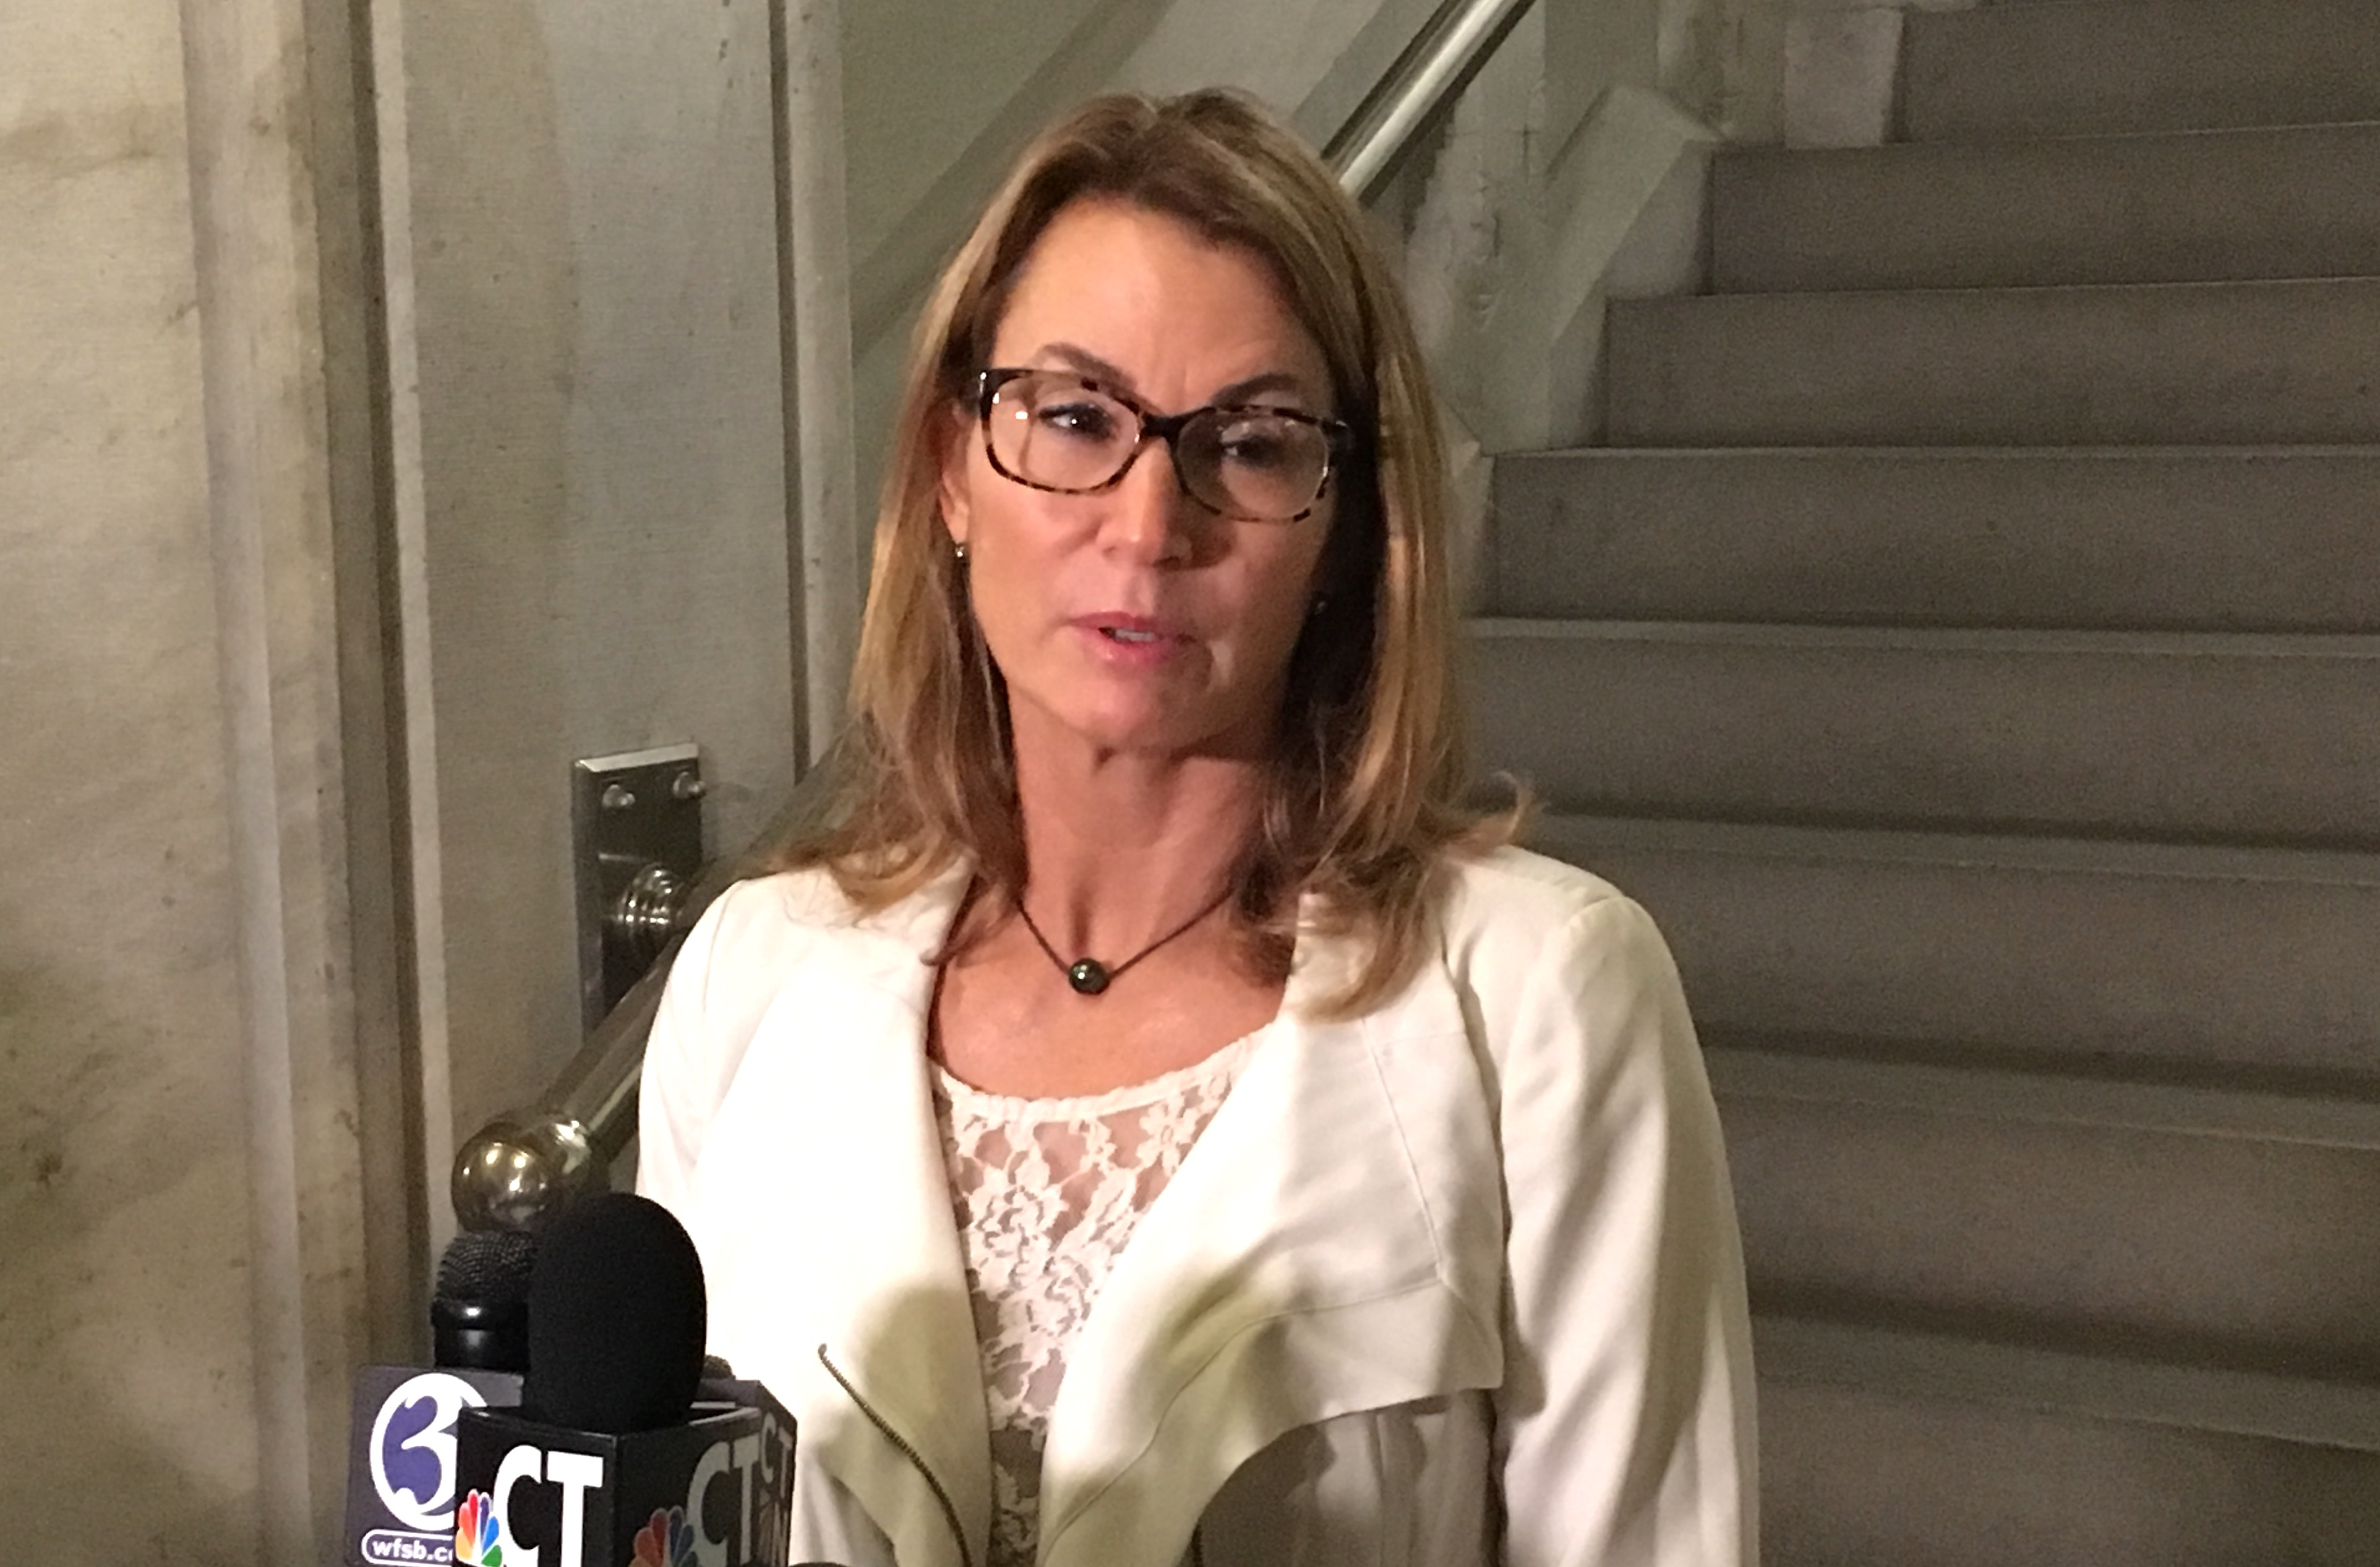 Themis Klarides says she will not run for governor